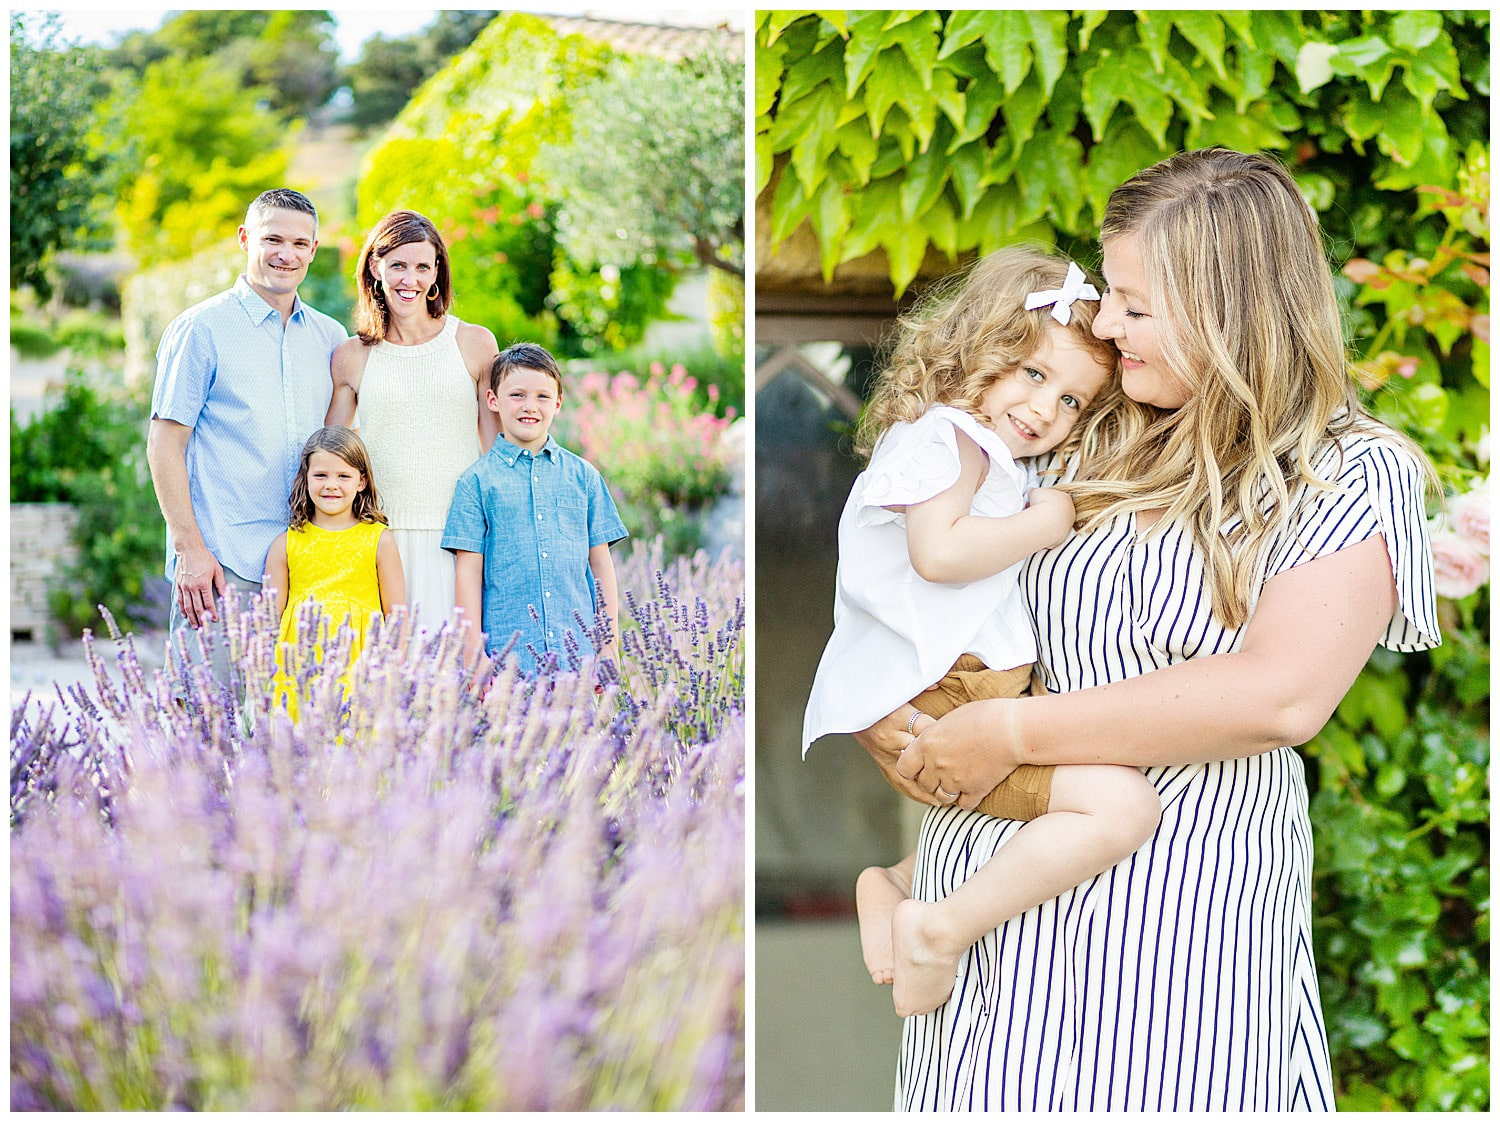 Marie-Calfopoulos-family-photographer-paris-provence-luberon-avignon-gordes-kids-advice-photo-session_0011